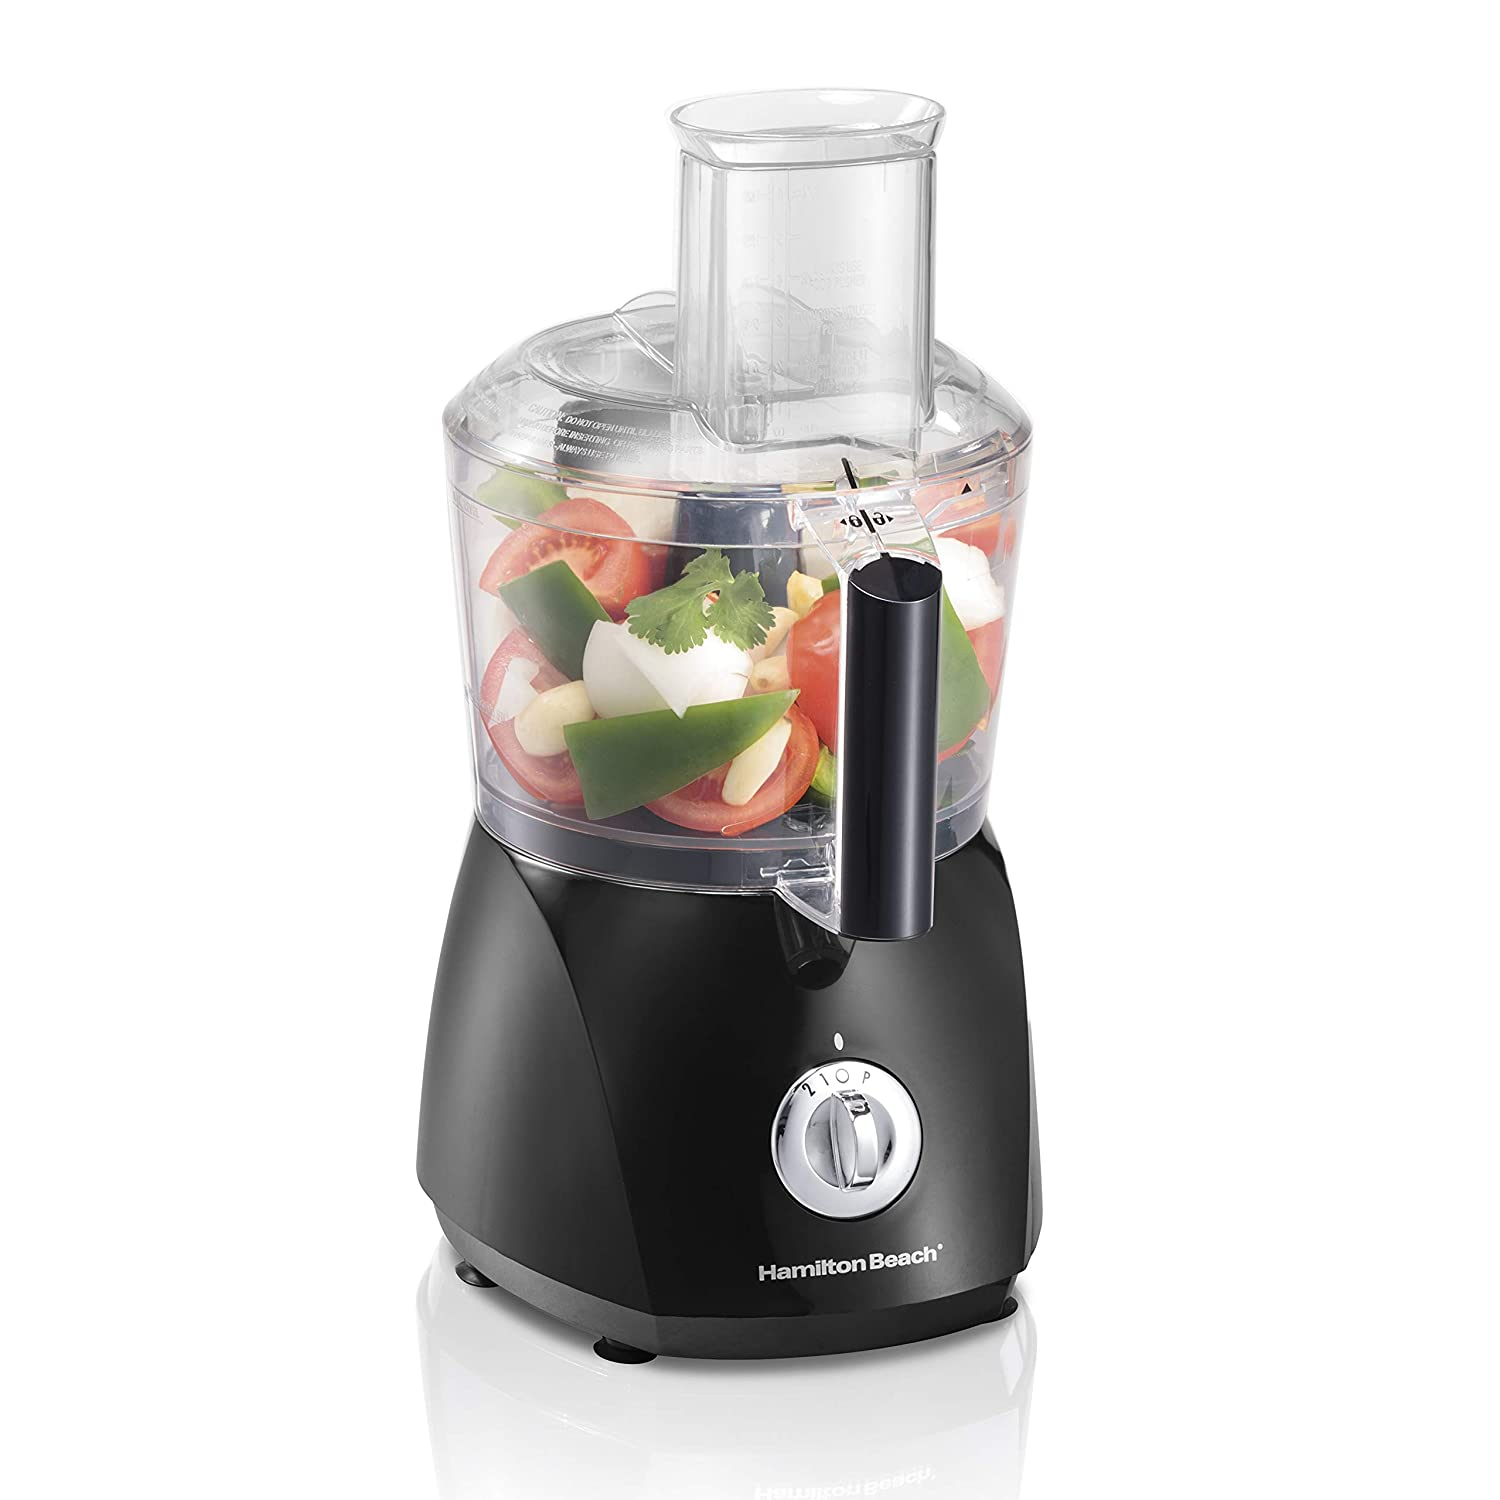 Hamilton Beach ChefPrep 10-Cup Food Processor Vegetable Chopper with 6 Functions to Chop, Puree, Shred, Slice and Crinkle Cut, Black 70670